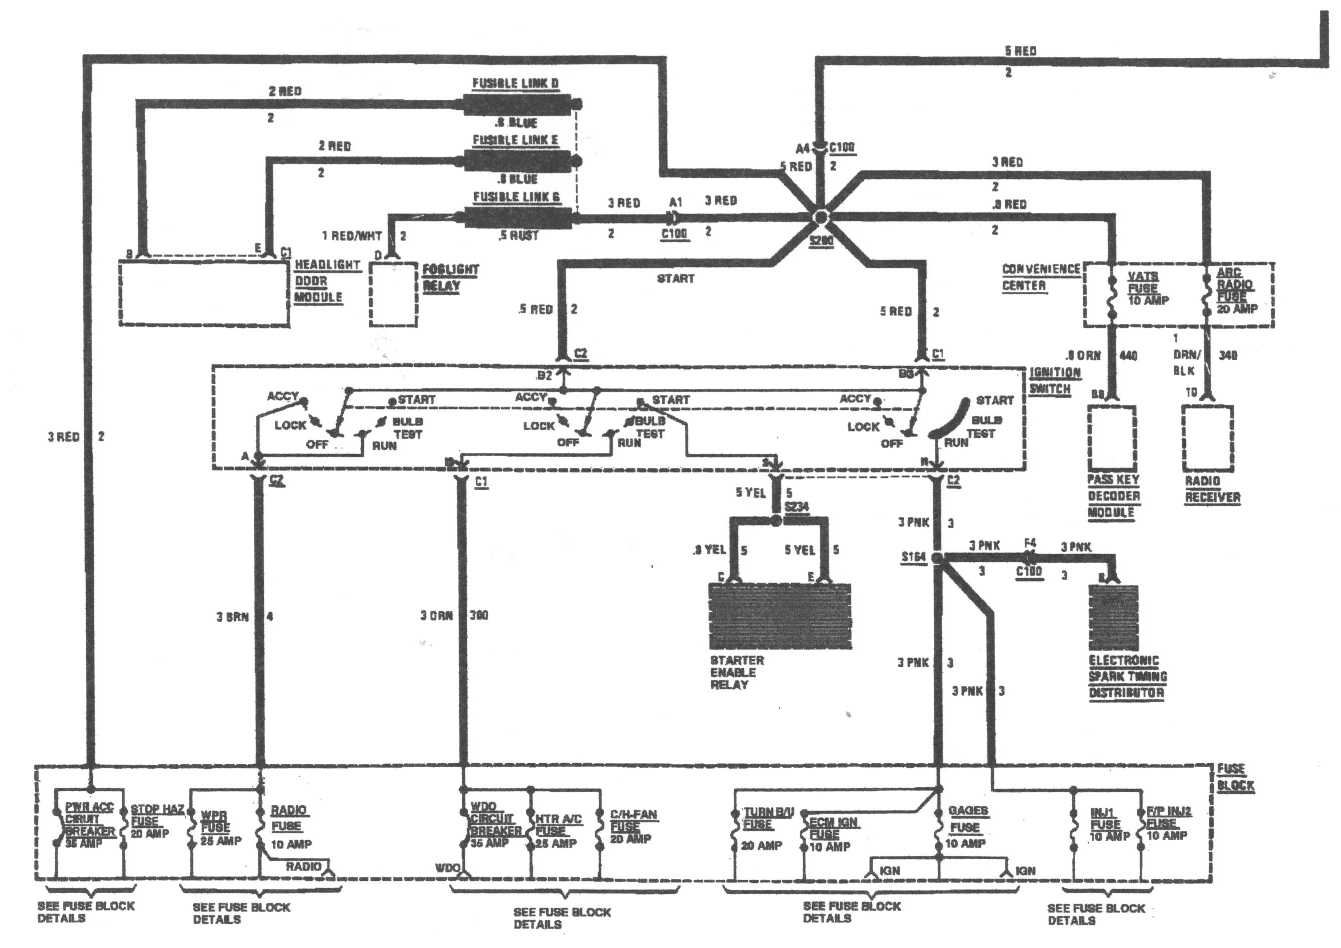 powerdistro 1980 el camino wiring diagram 1969 el camino wiring diagram 1980 camaro dash wiring diagram at cita.asia